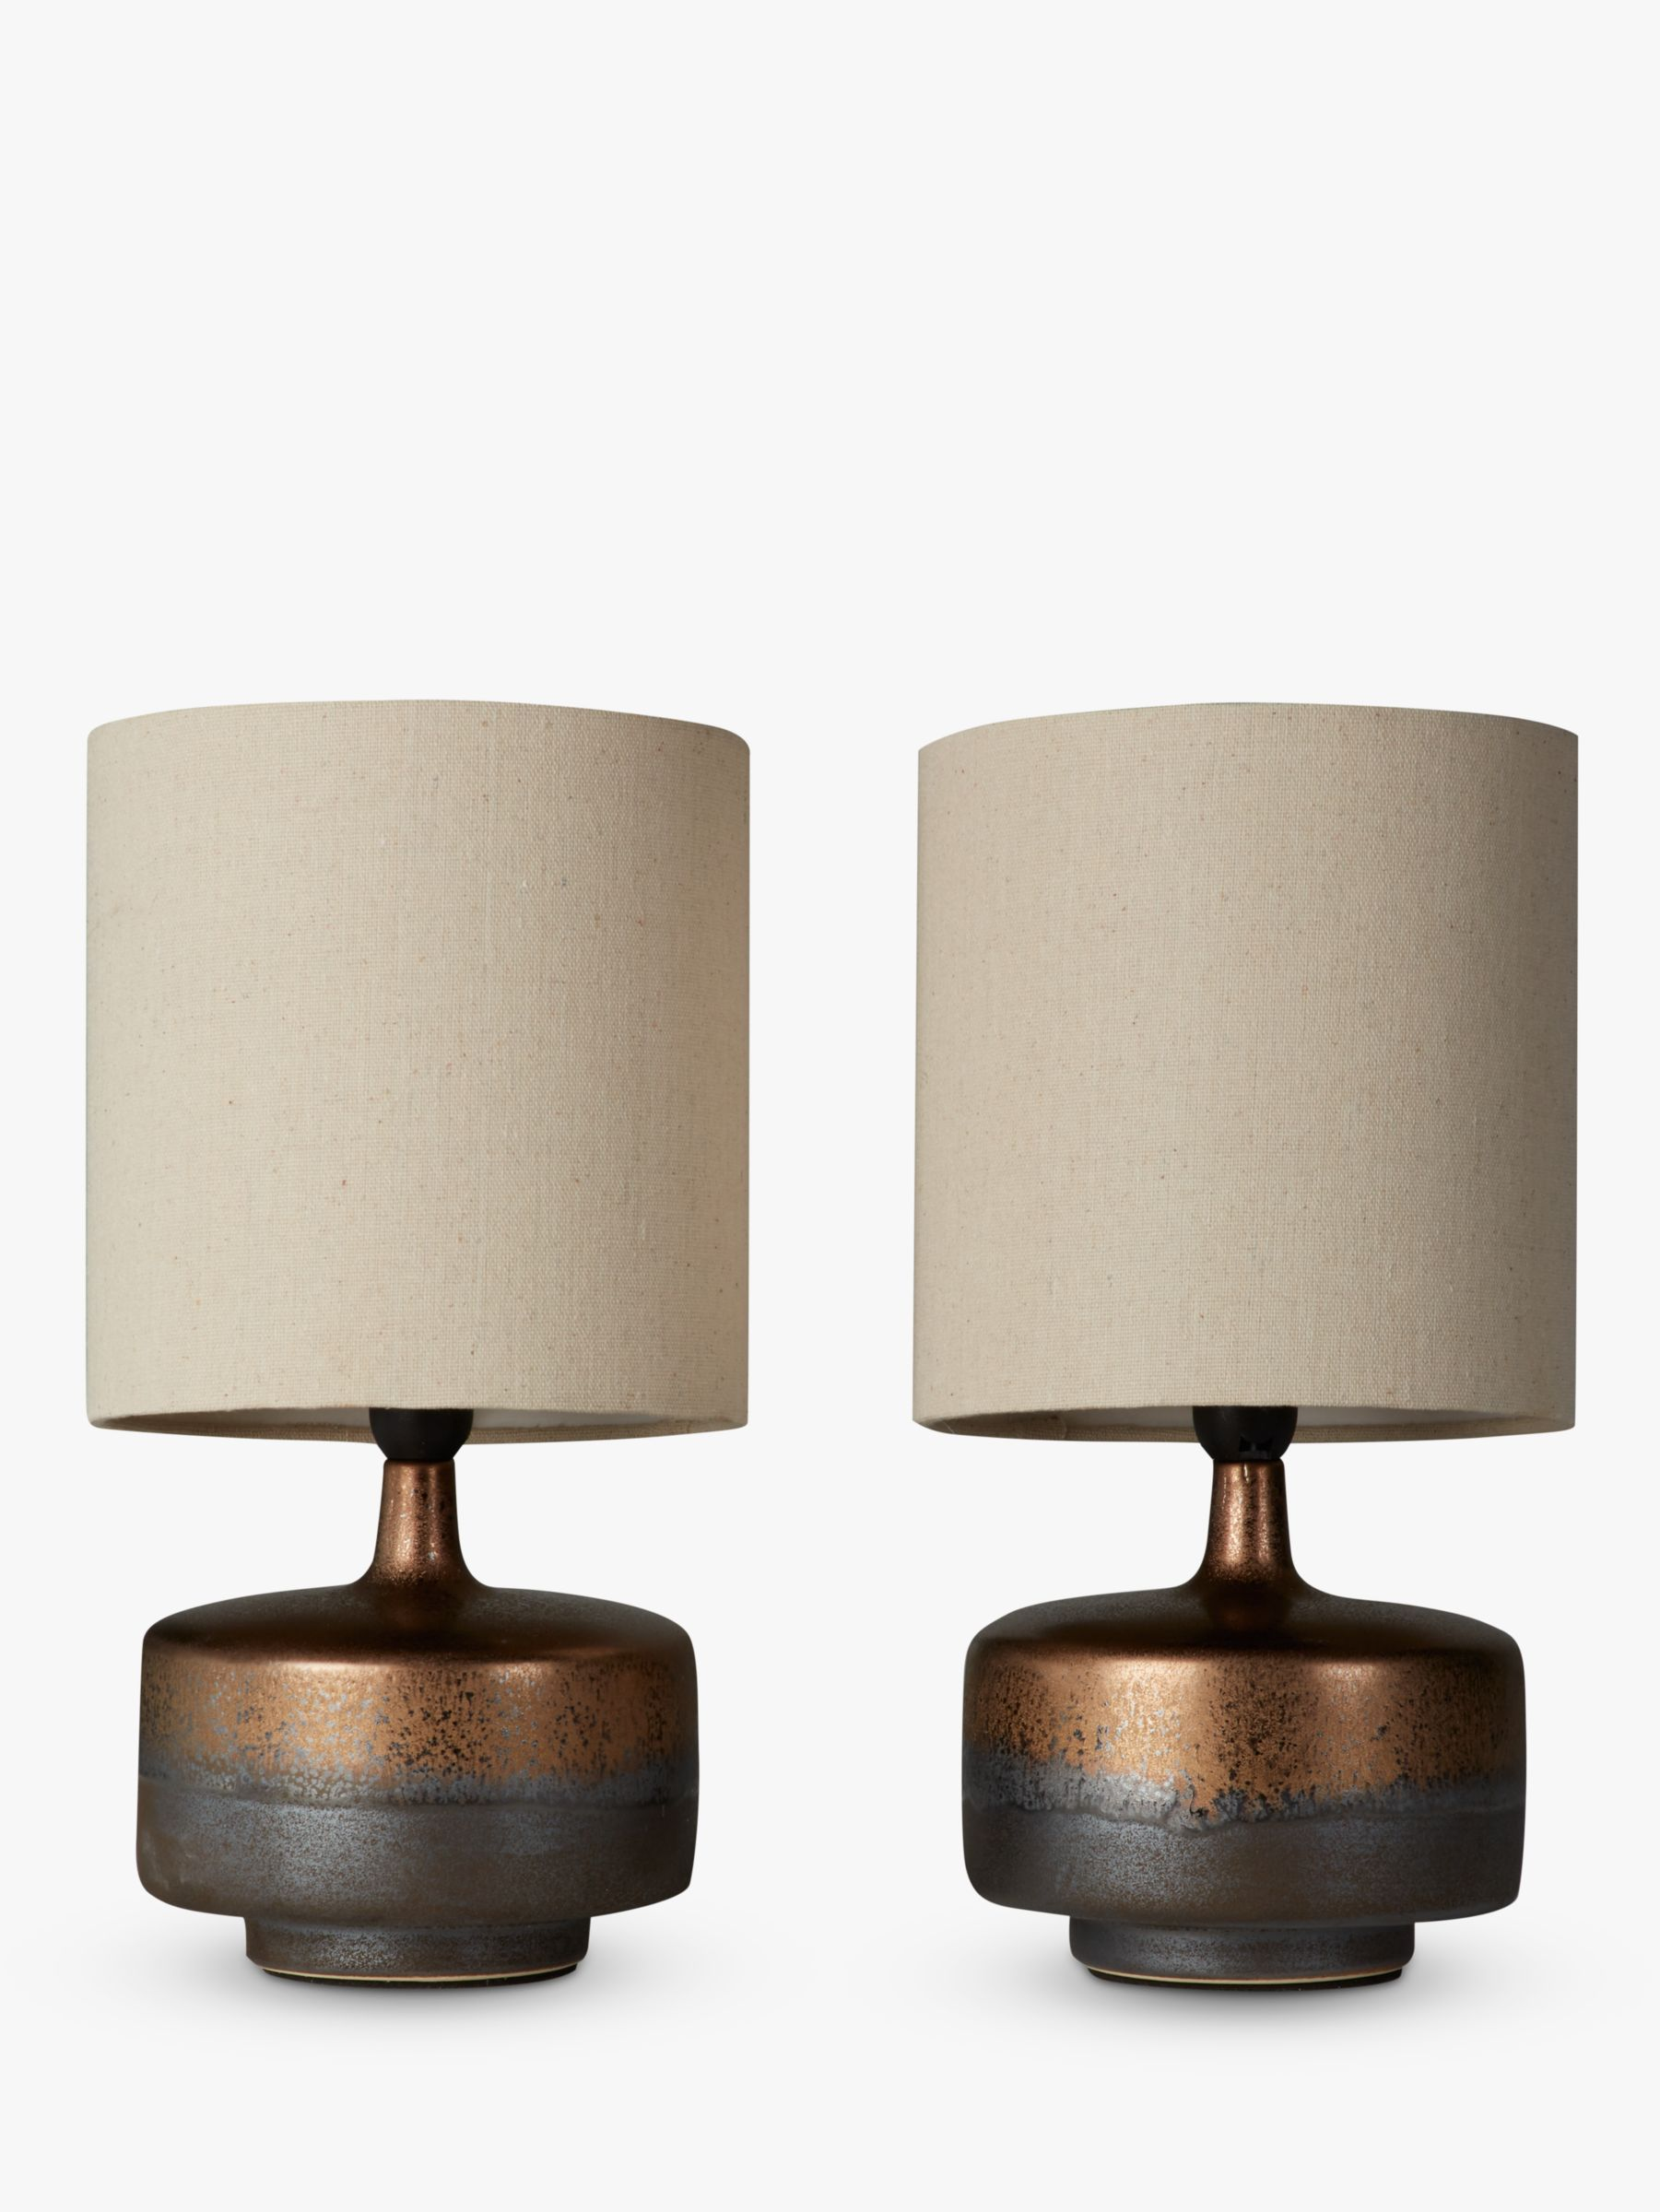 John Lewis & Partners Delaney Metallic Glaze Ceramic Table Lamp, Set of 2